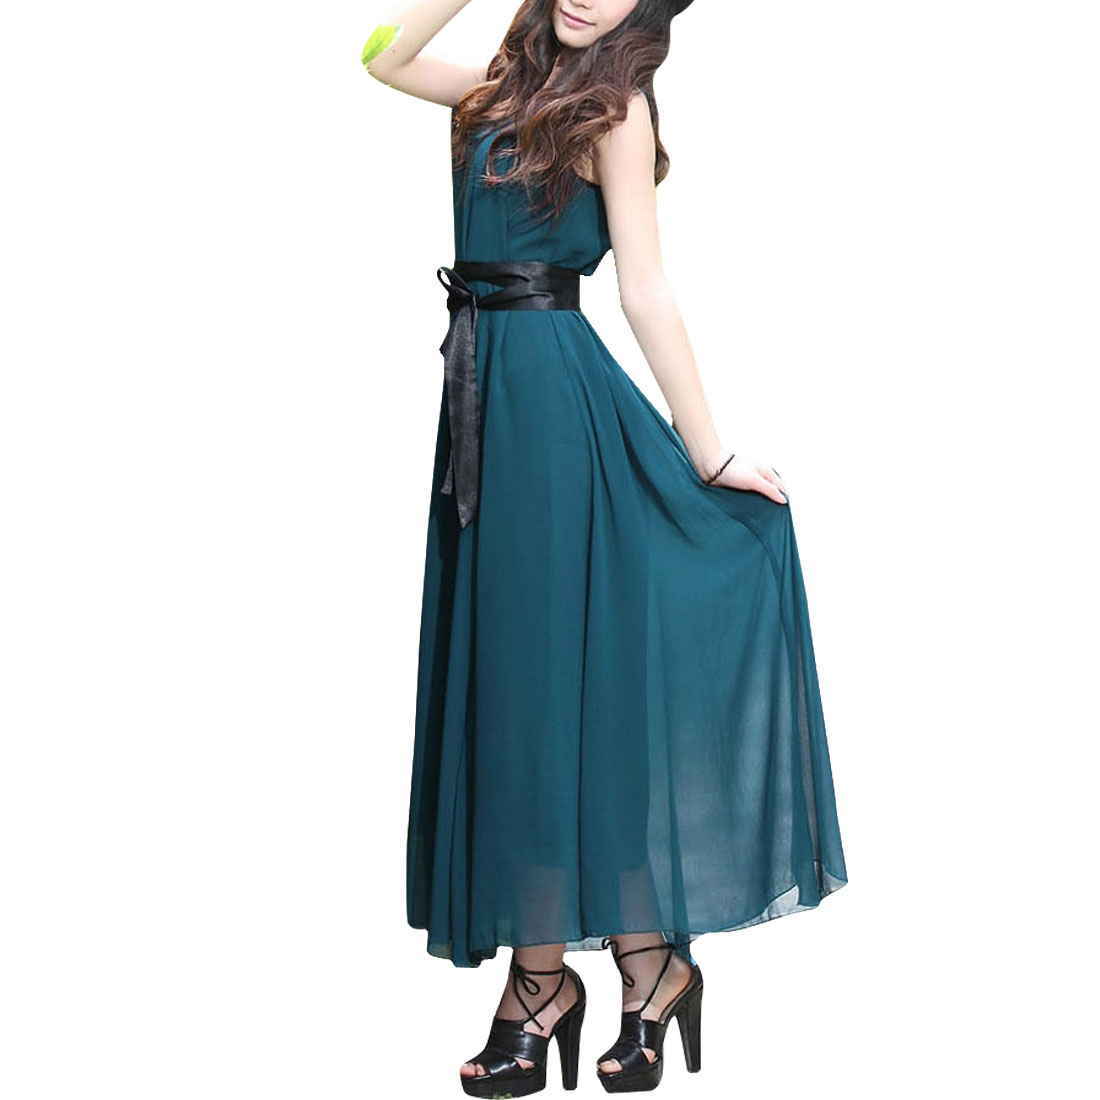 Ladies Dark Teal Color Scoop Neck Self Tie Waist Straps Chiffon Dress XS